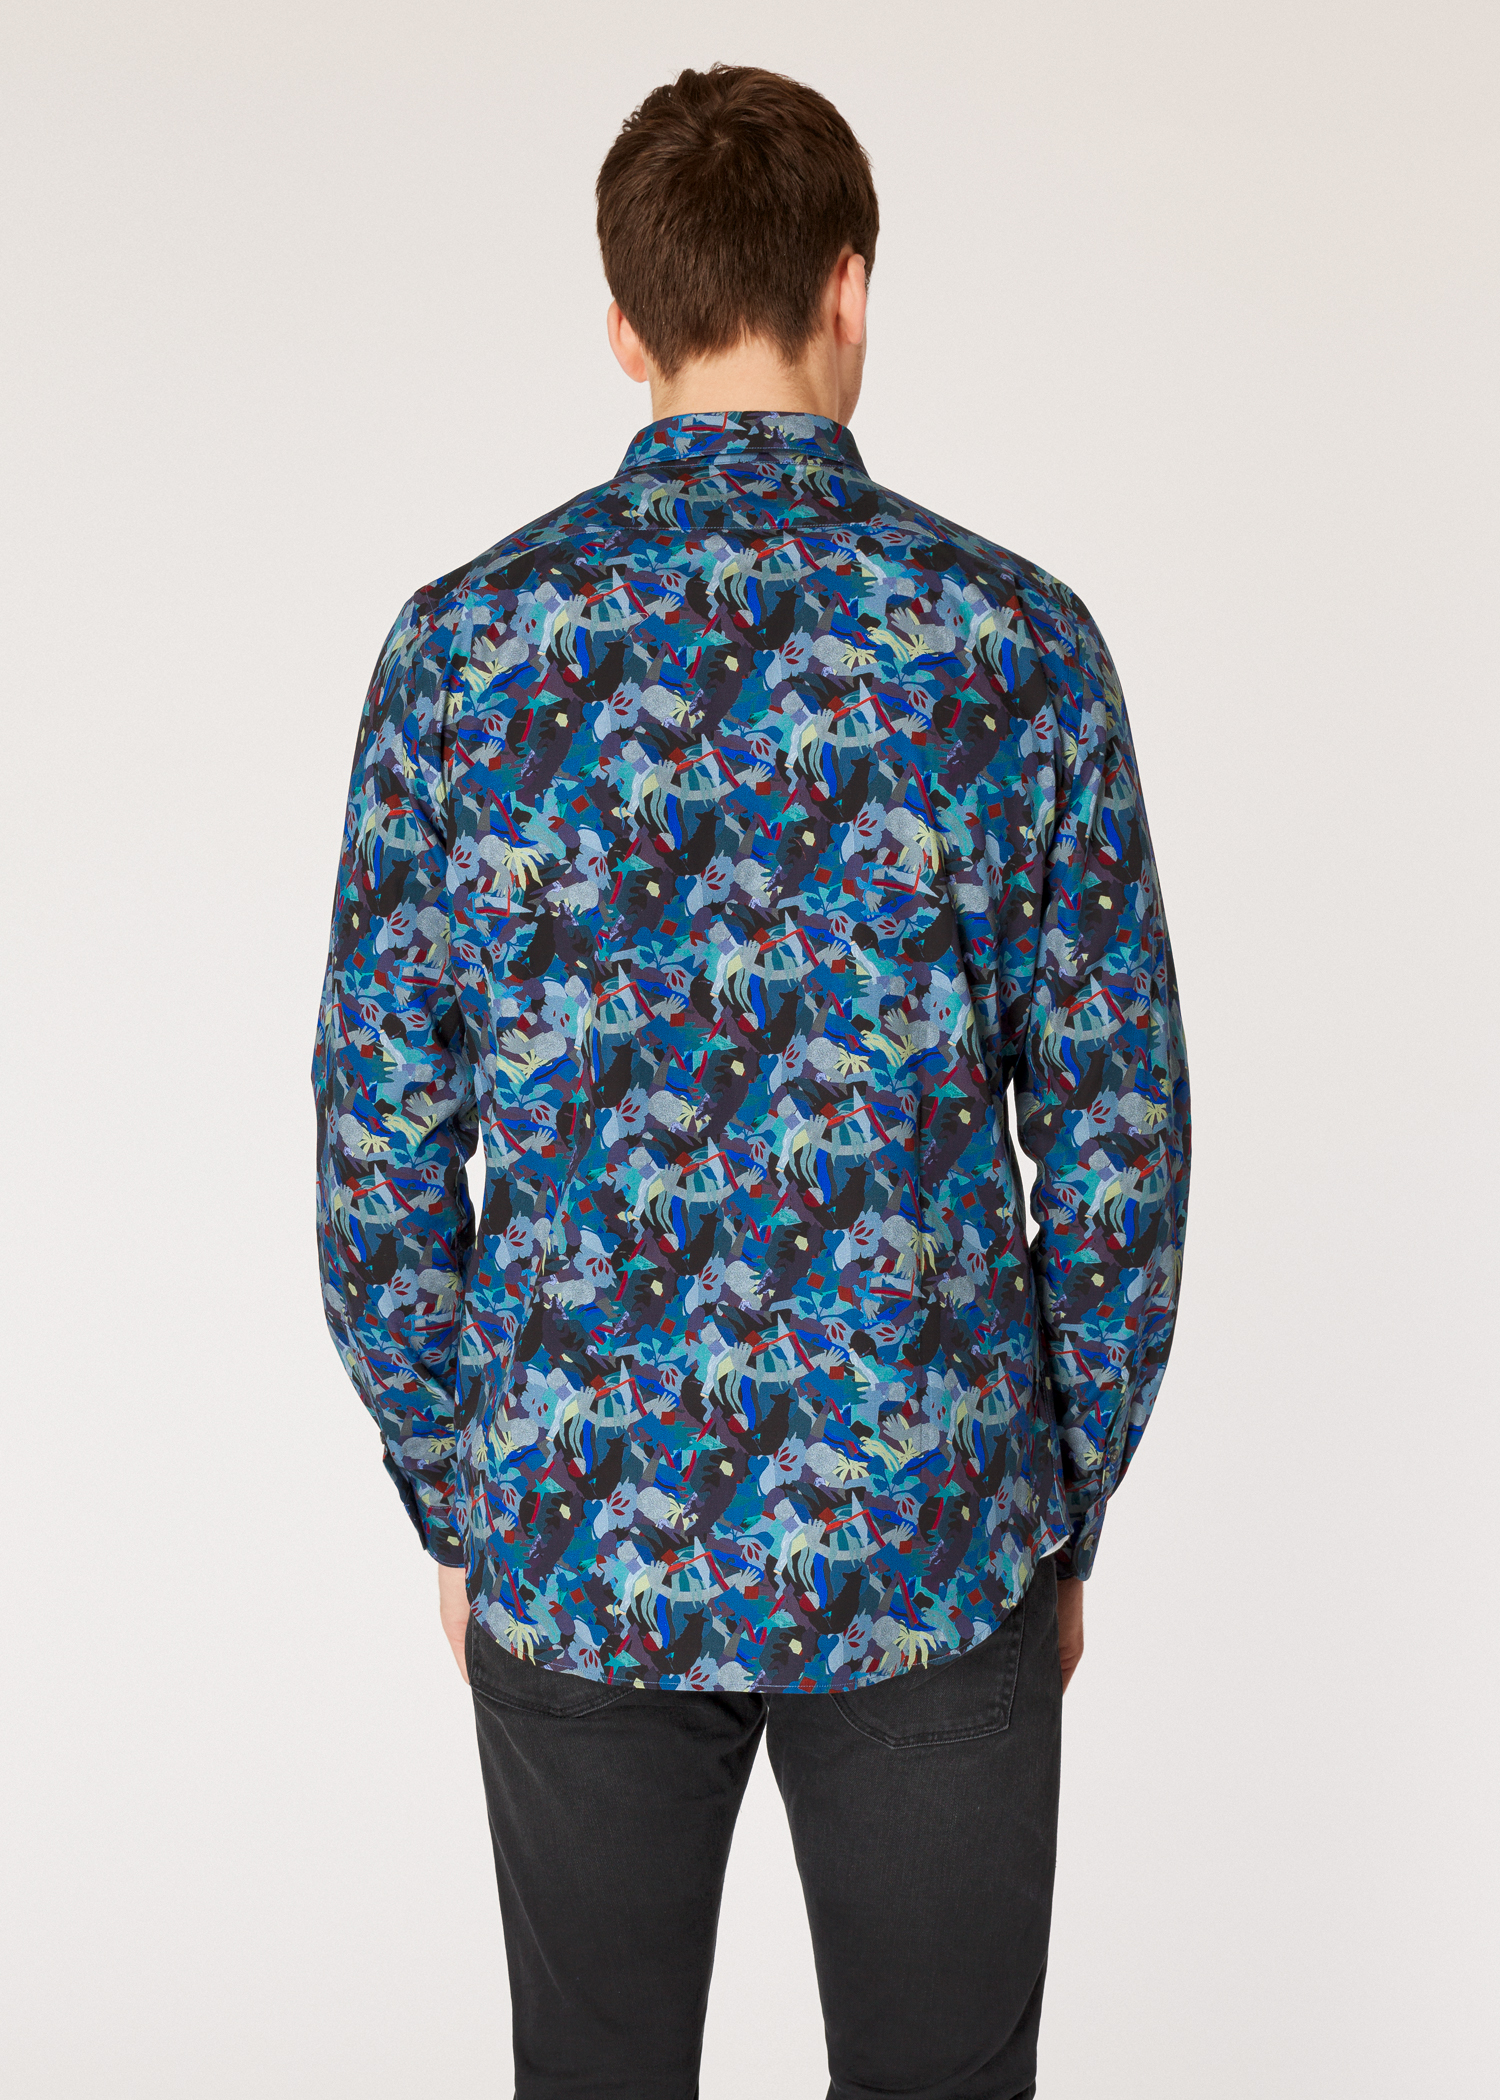 2033ffbcb3 Model back view - Men's Tailored-Fit Multi-Coloured 'Urban Fox Collage'